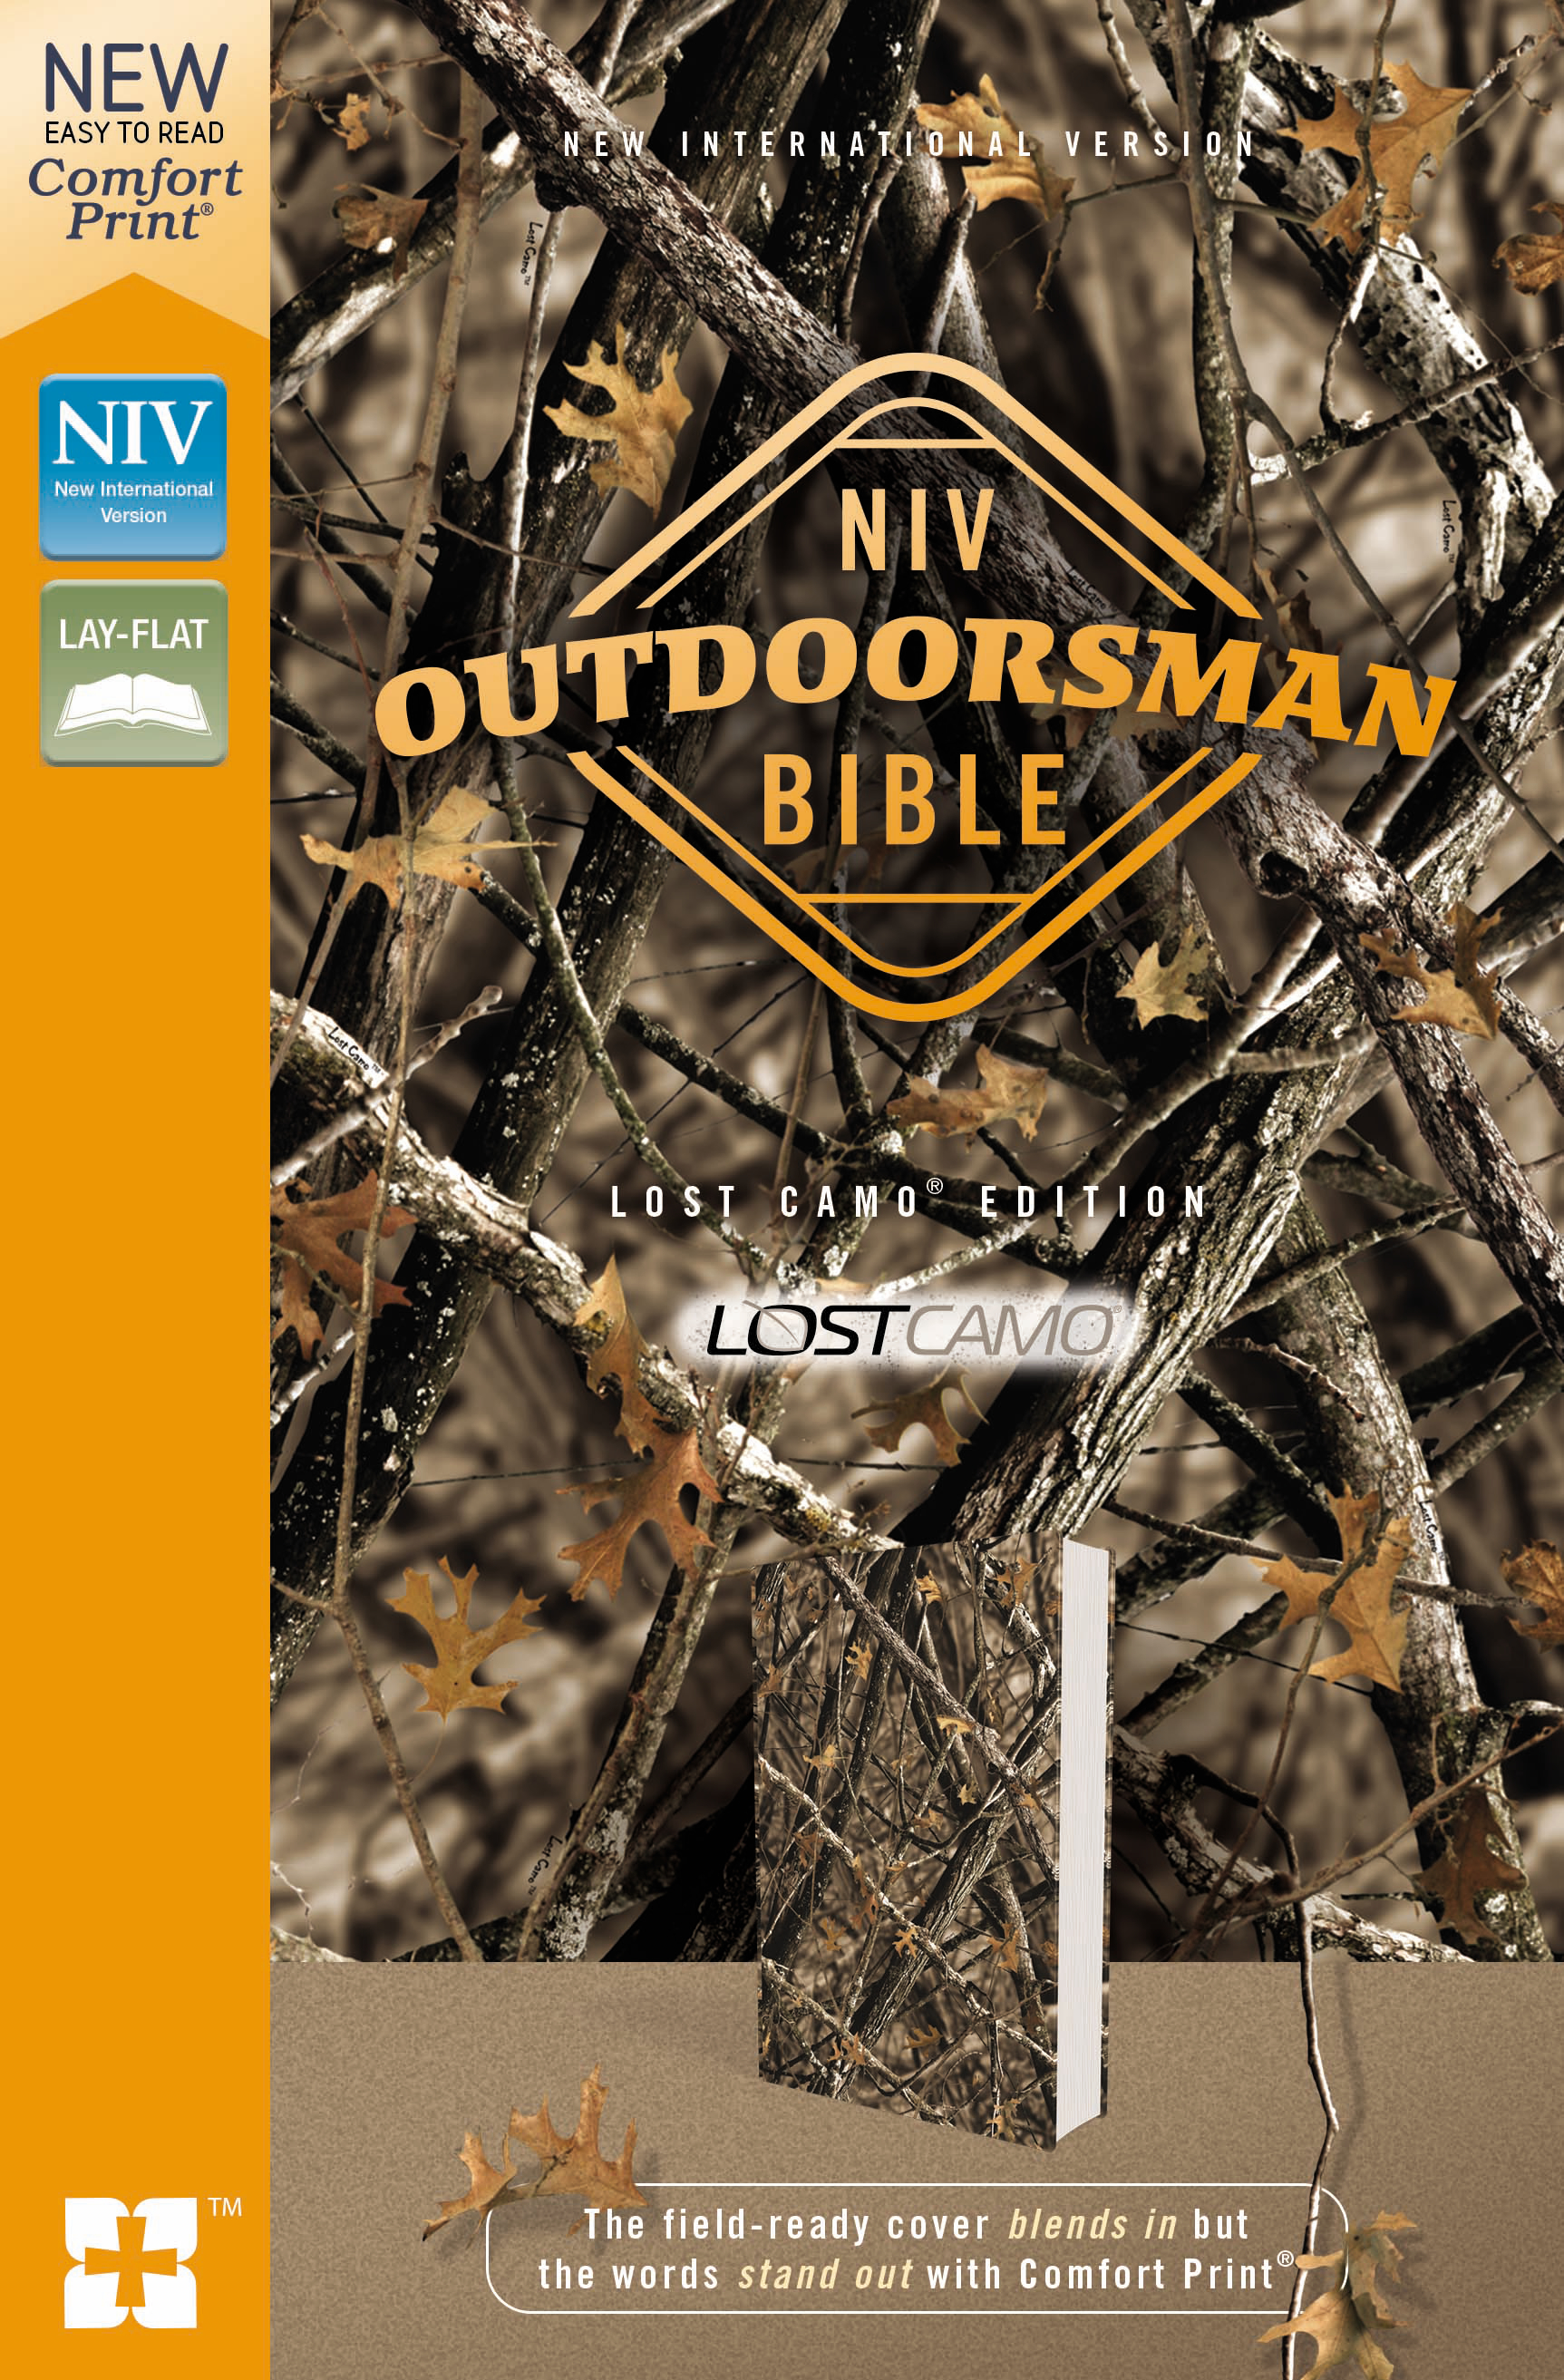 https://store.faithgateway.com/products/niv-outdoorsman-bible-lost-camo-edition-leathersoft-red-letter-edition-comfort-print-the-field-ready-cover-blends-in-but-the-words-stand-out-with-comfort-print%C2%AE